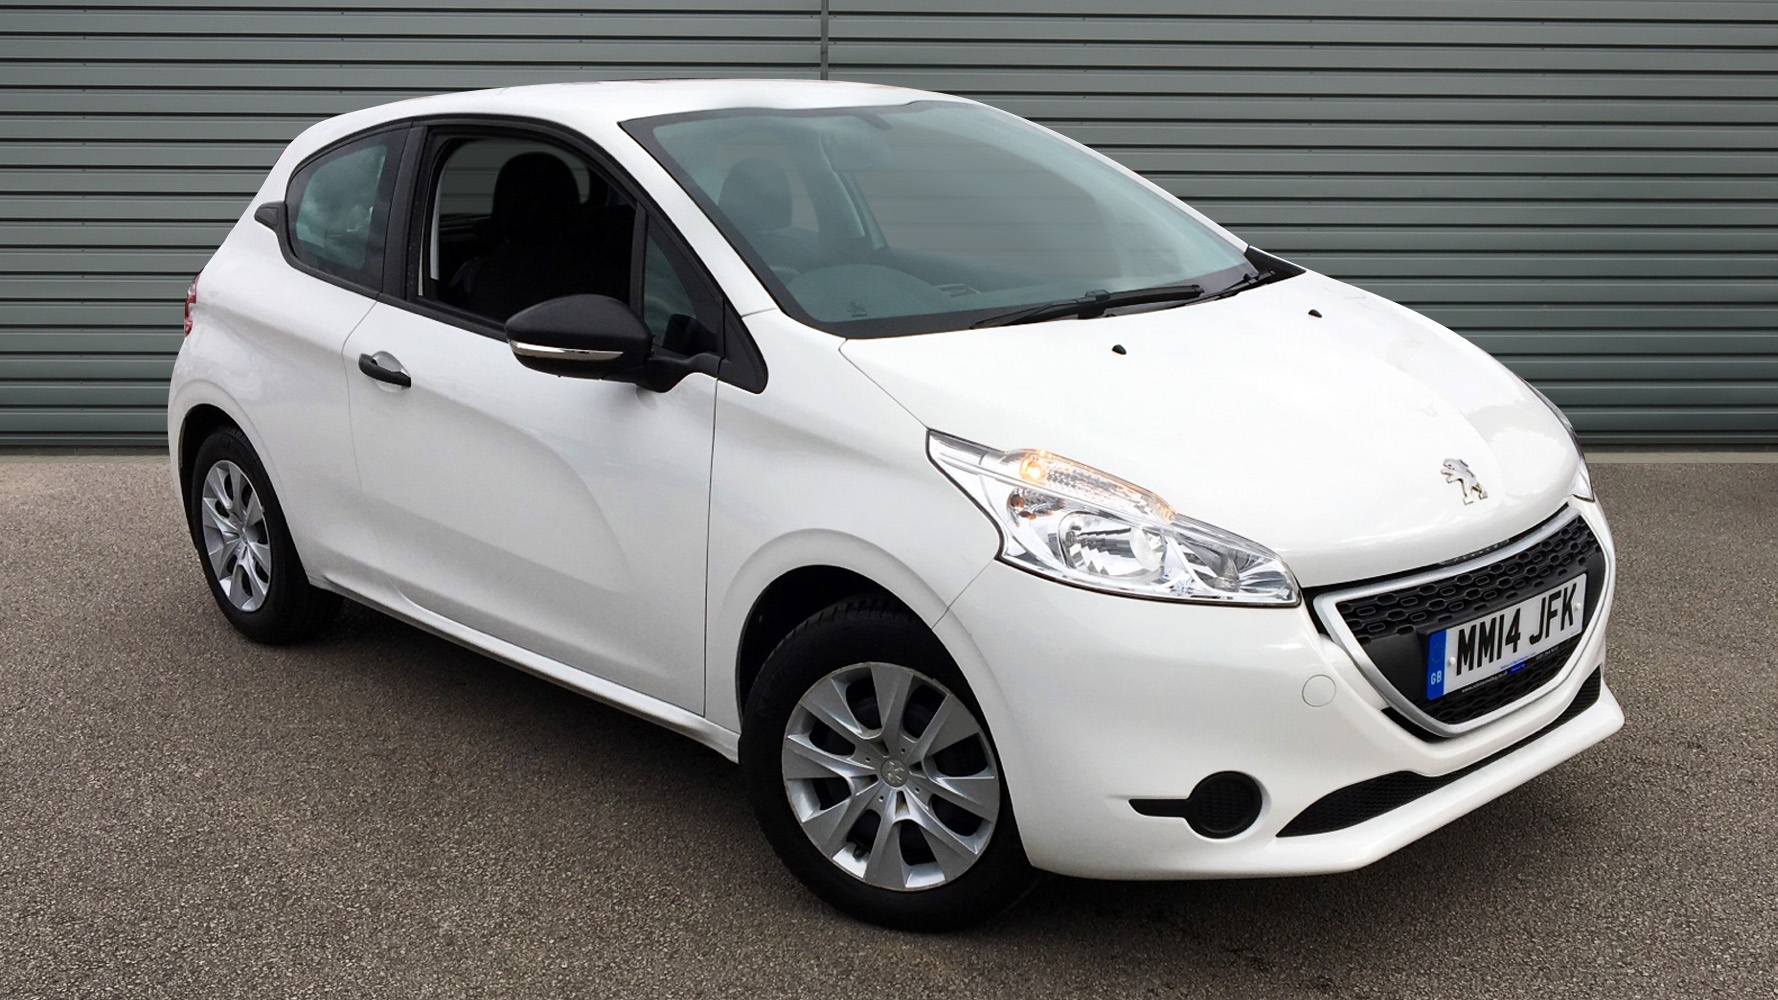 used peugeot 208 hatchback 1 0 vti access 3dr 2014 mm14jfk. Black Bedroom Furniture Sets. Home Design Ideas